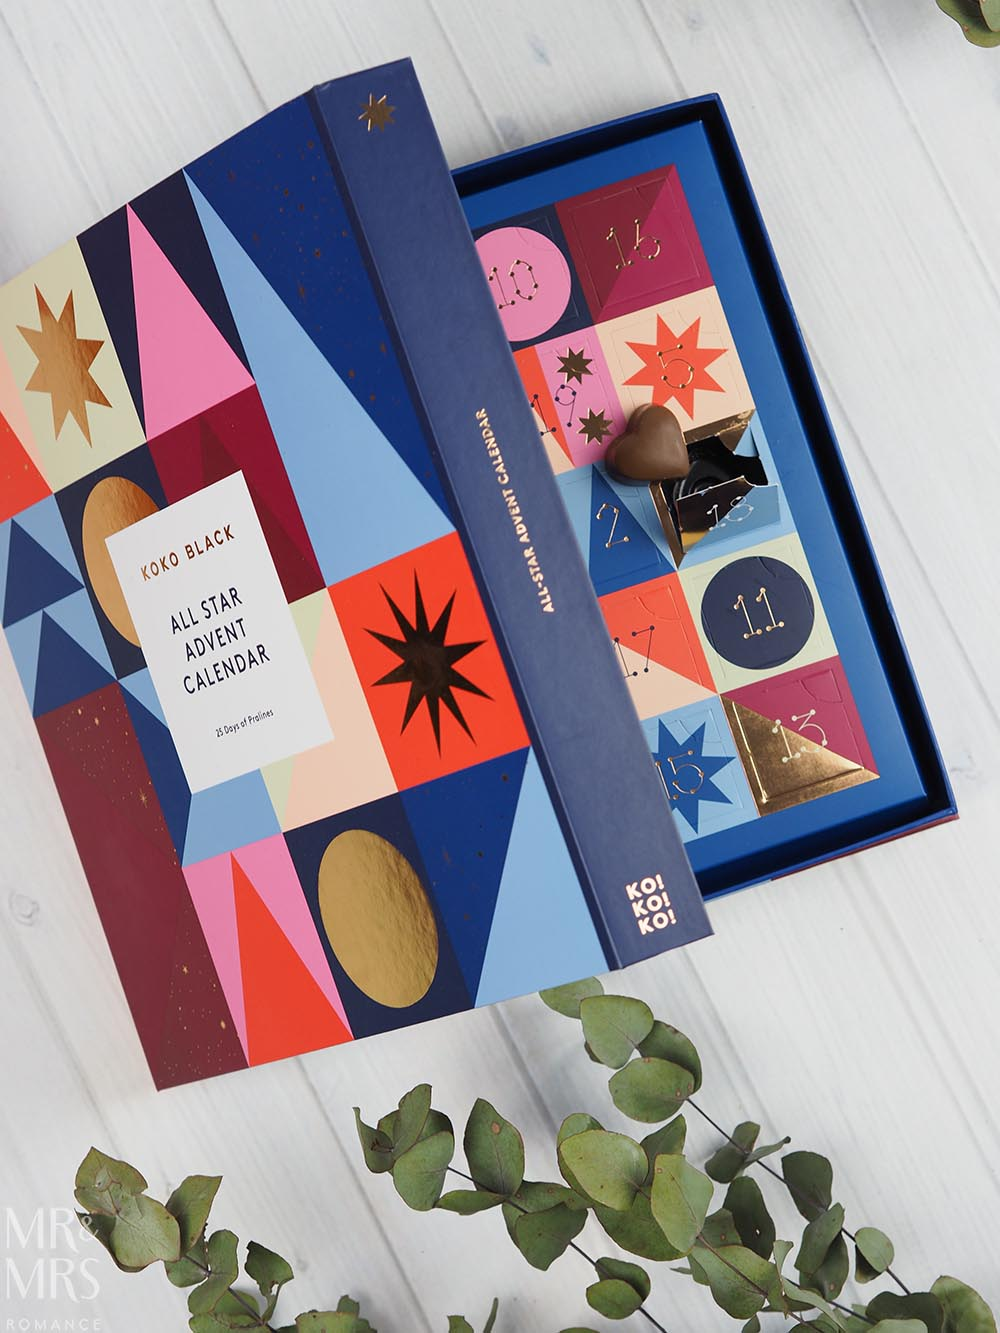 Christmas gift guide homewares and food - Koko Black chocolate advent calendar